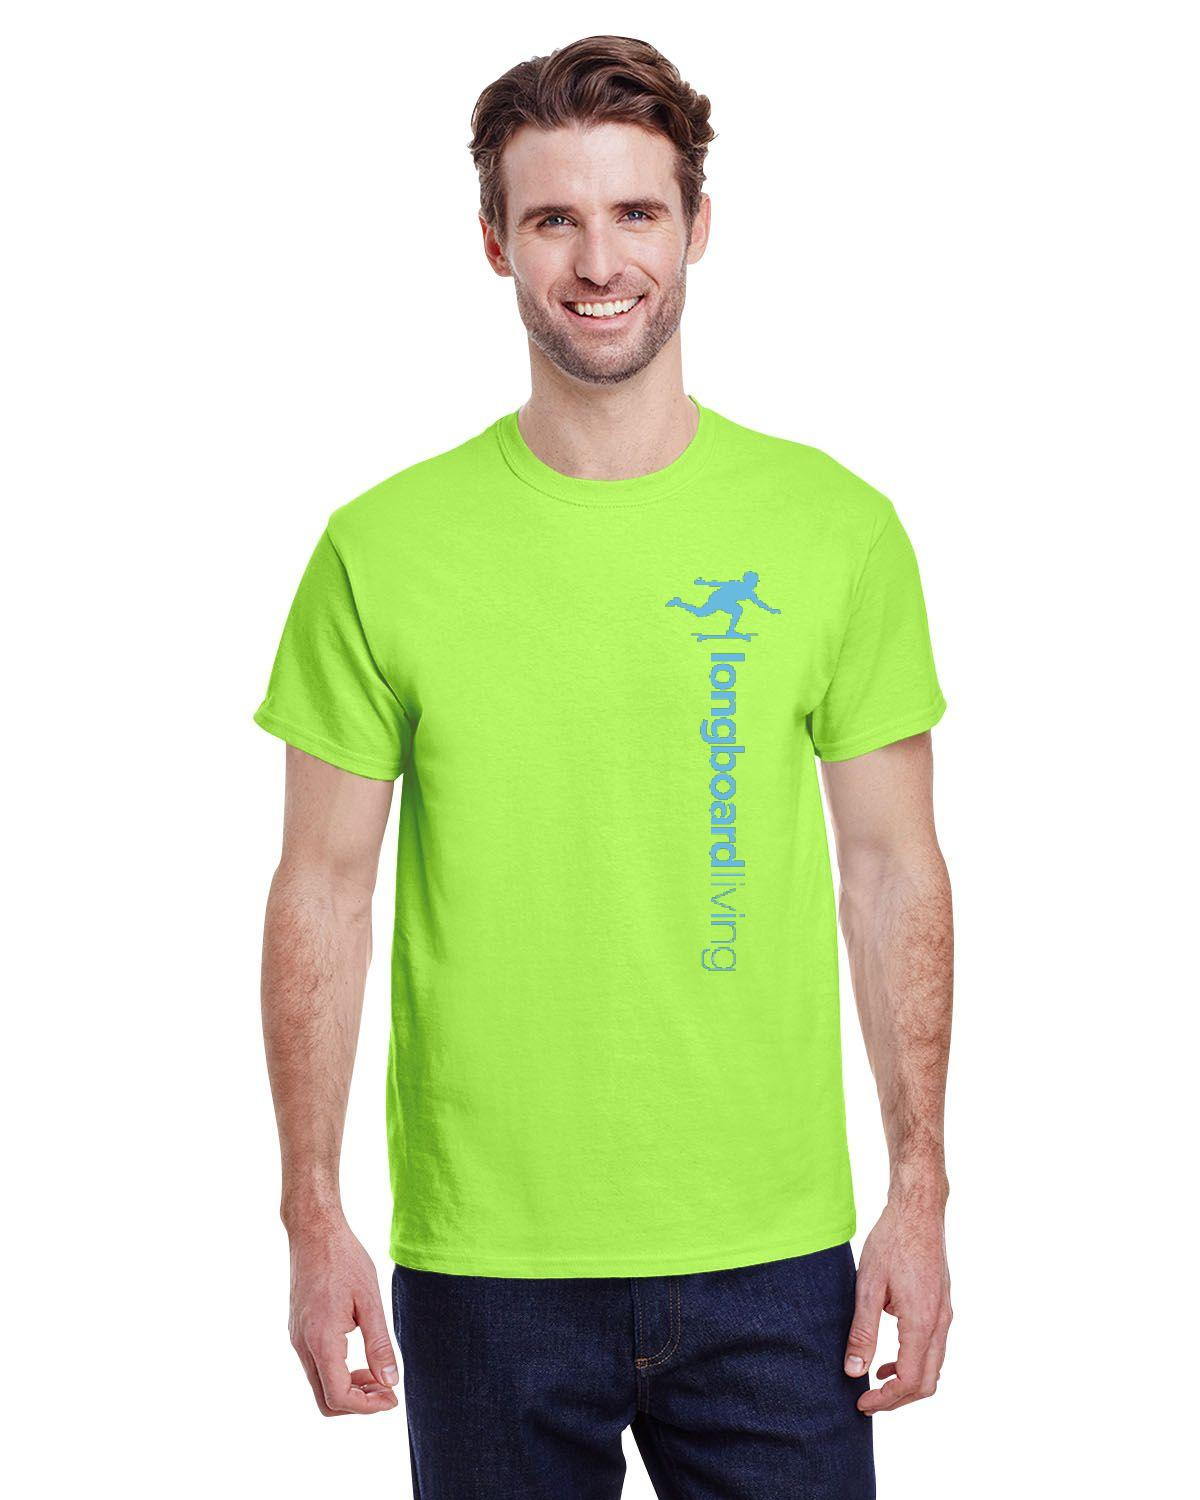 Longboard Living Vertical Logo Shirt - Bright Colour Pack